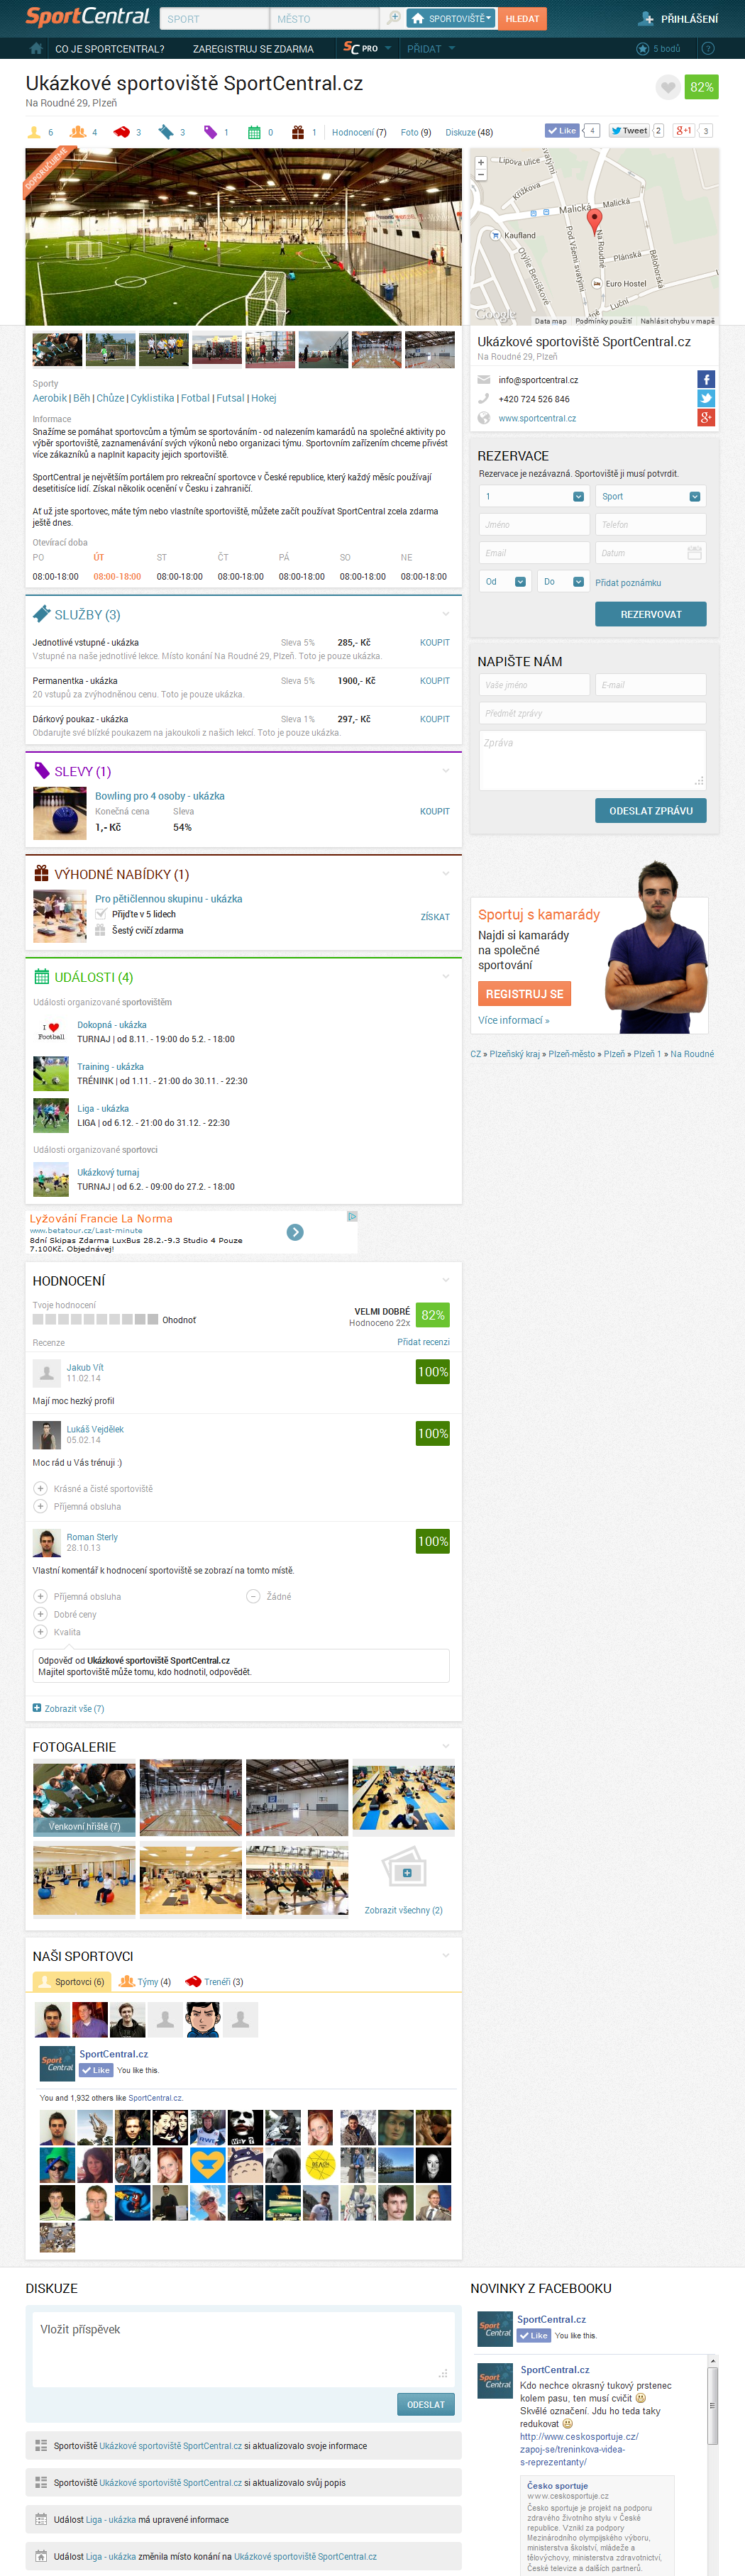 SportCentral redesign of sports venues profiles - new